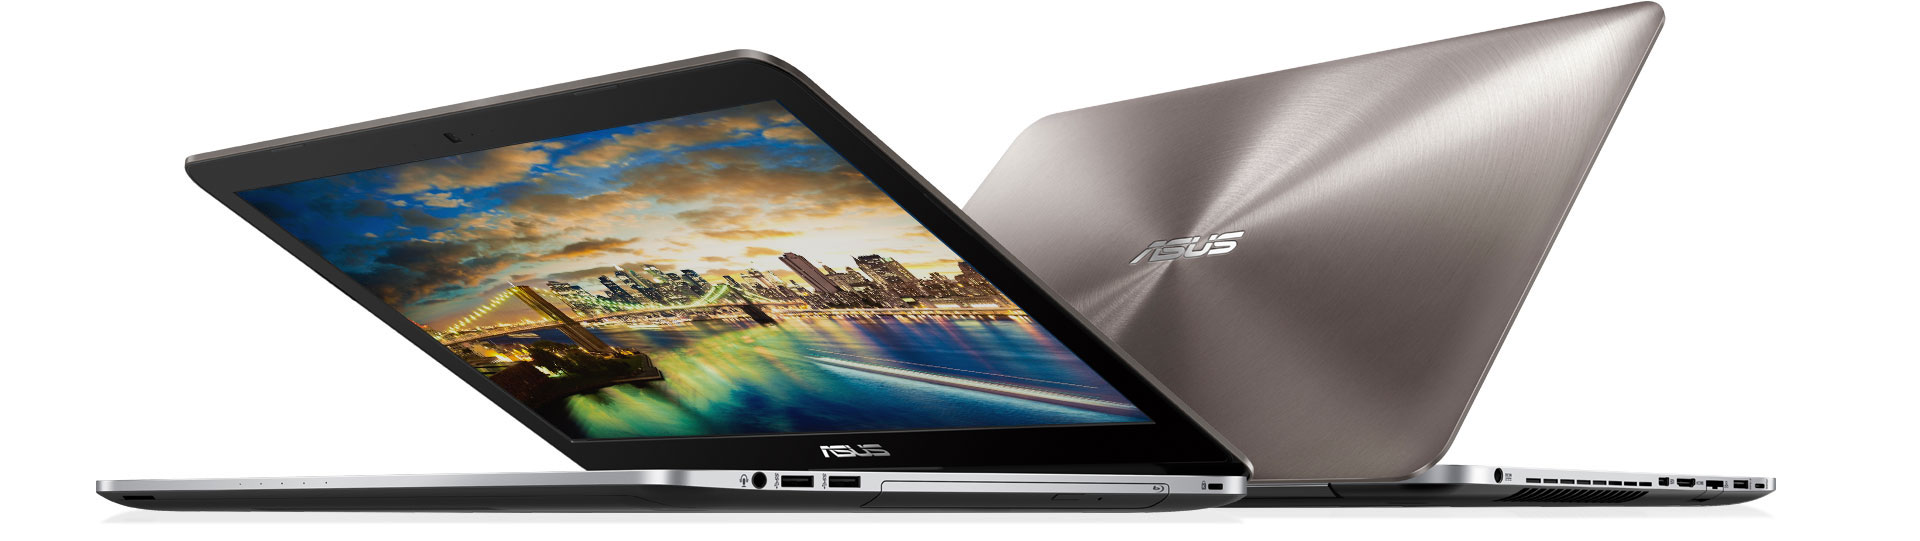 asus back to school notebook vivobook pro